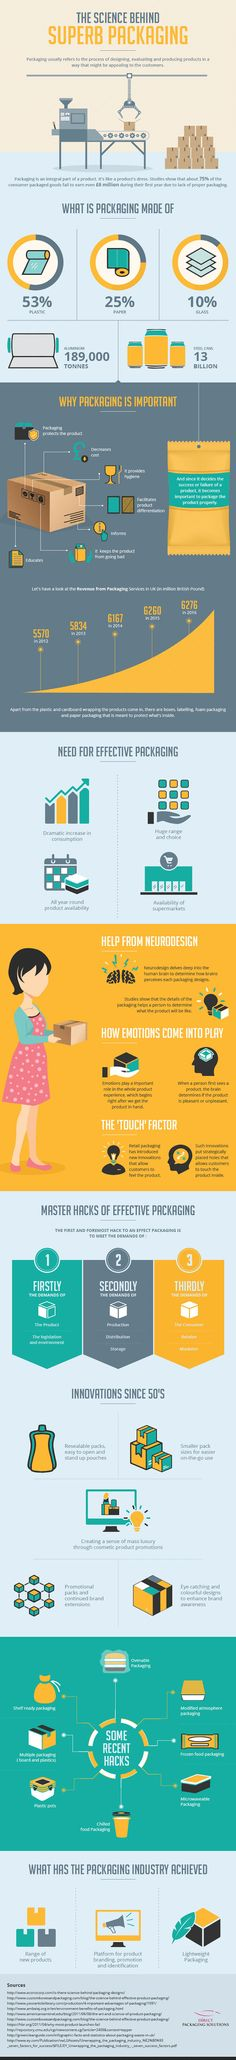 The Science of Superb Product Packaging for Retail | Marketing Infographic